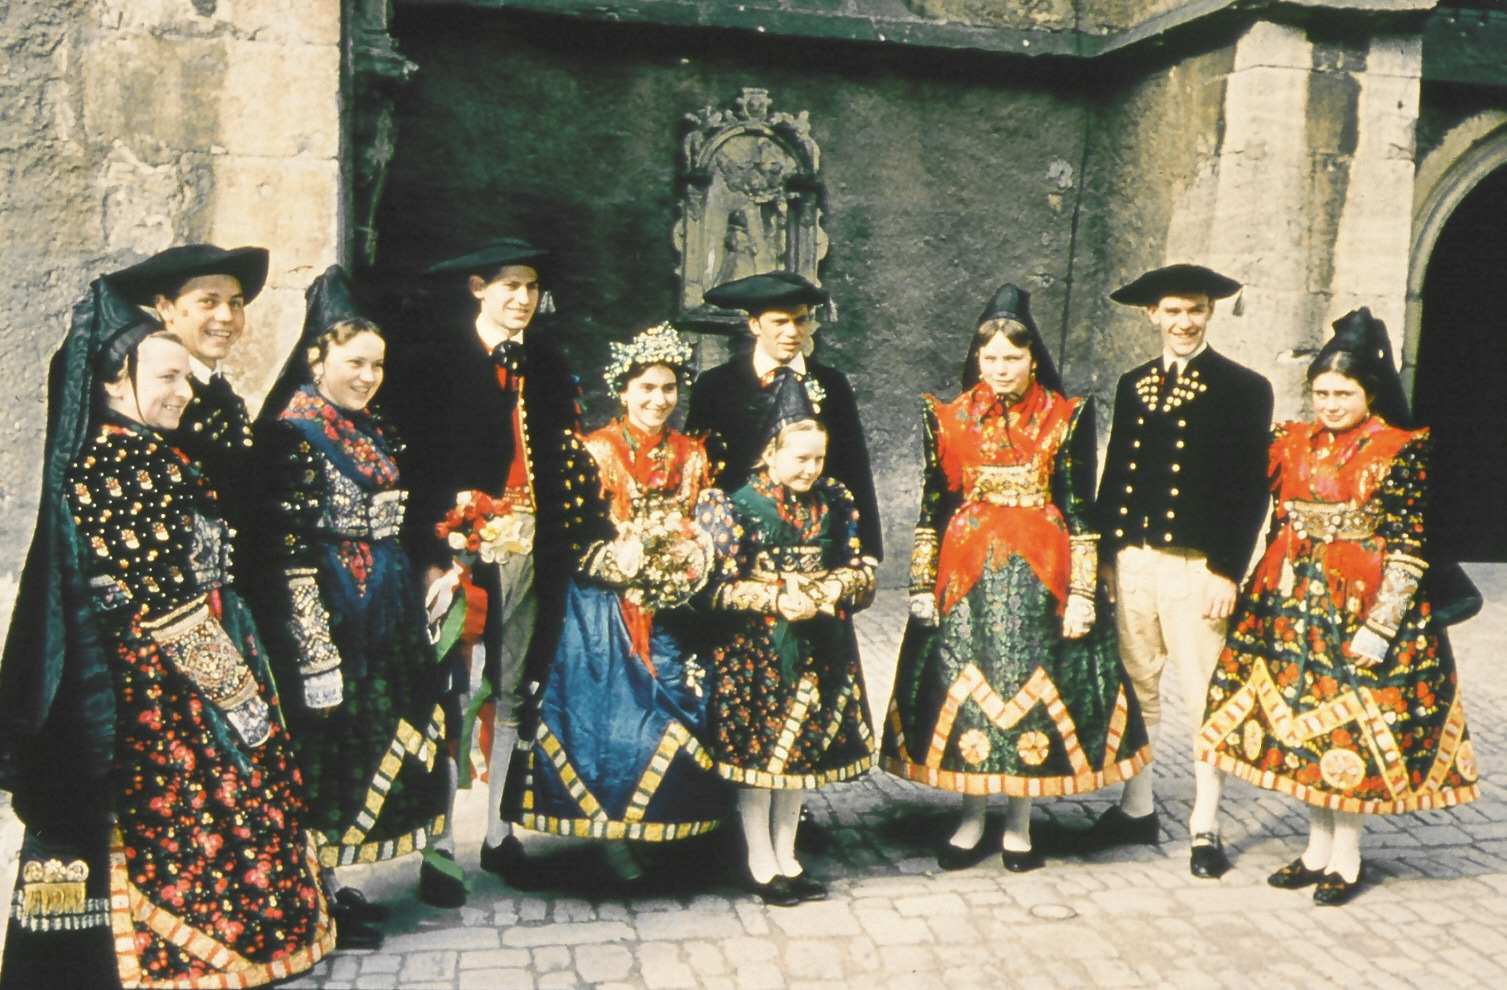 Ochsenfurt 1960, Family with Franconia Tracht